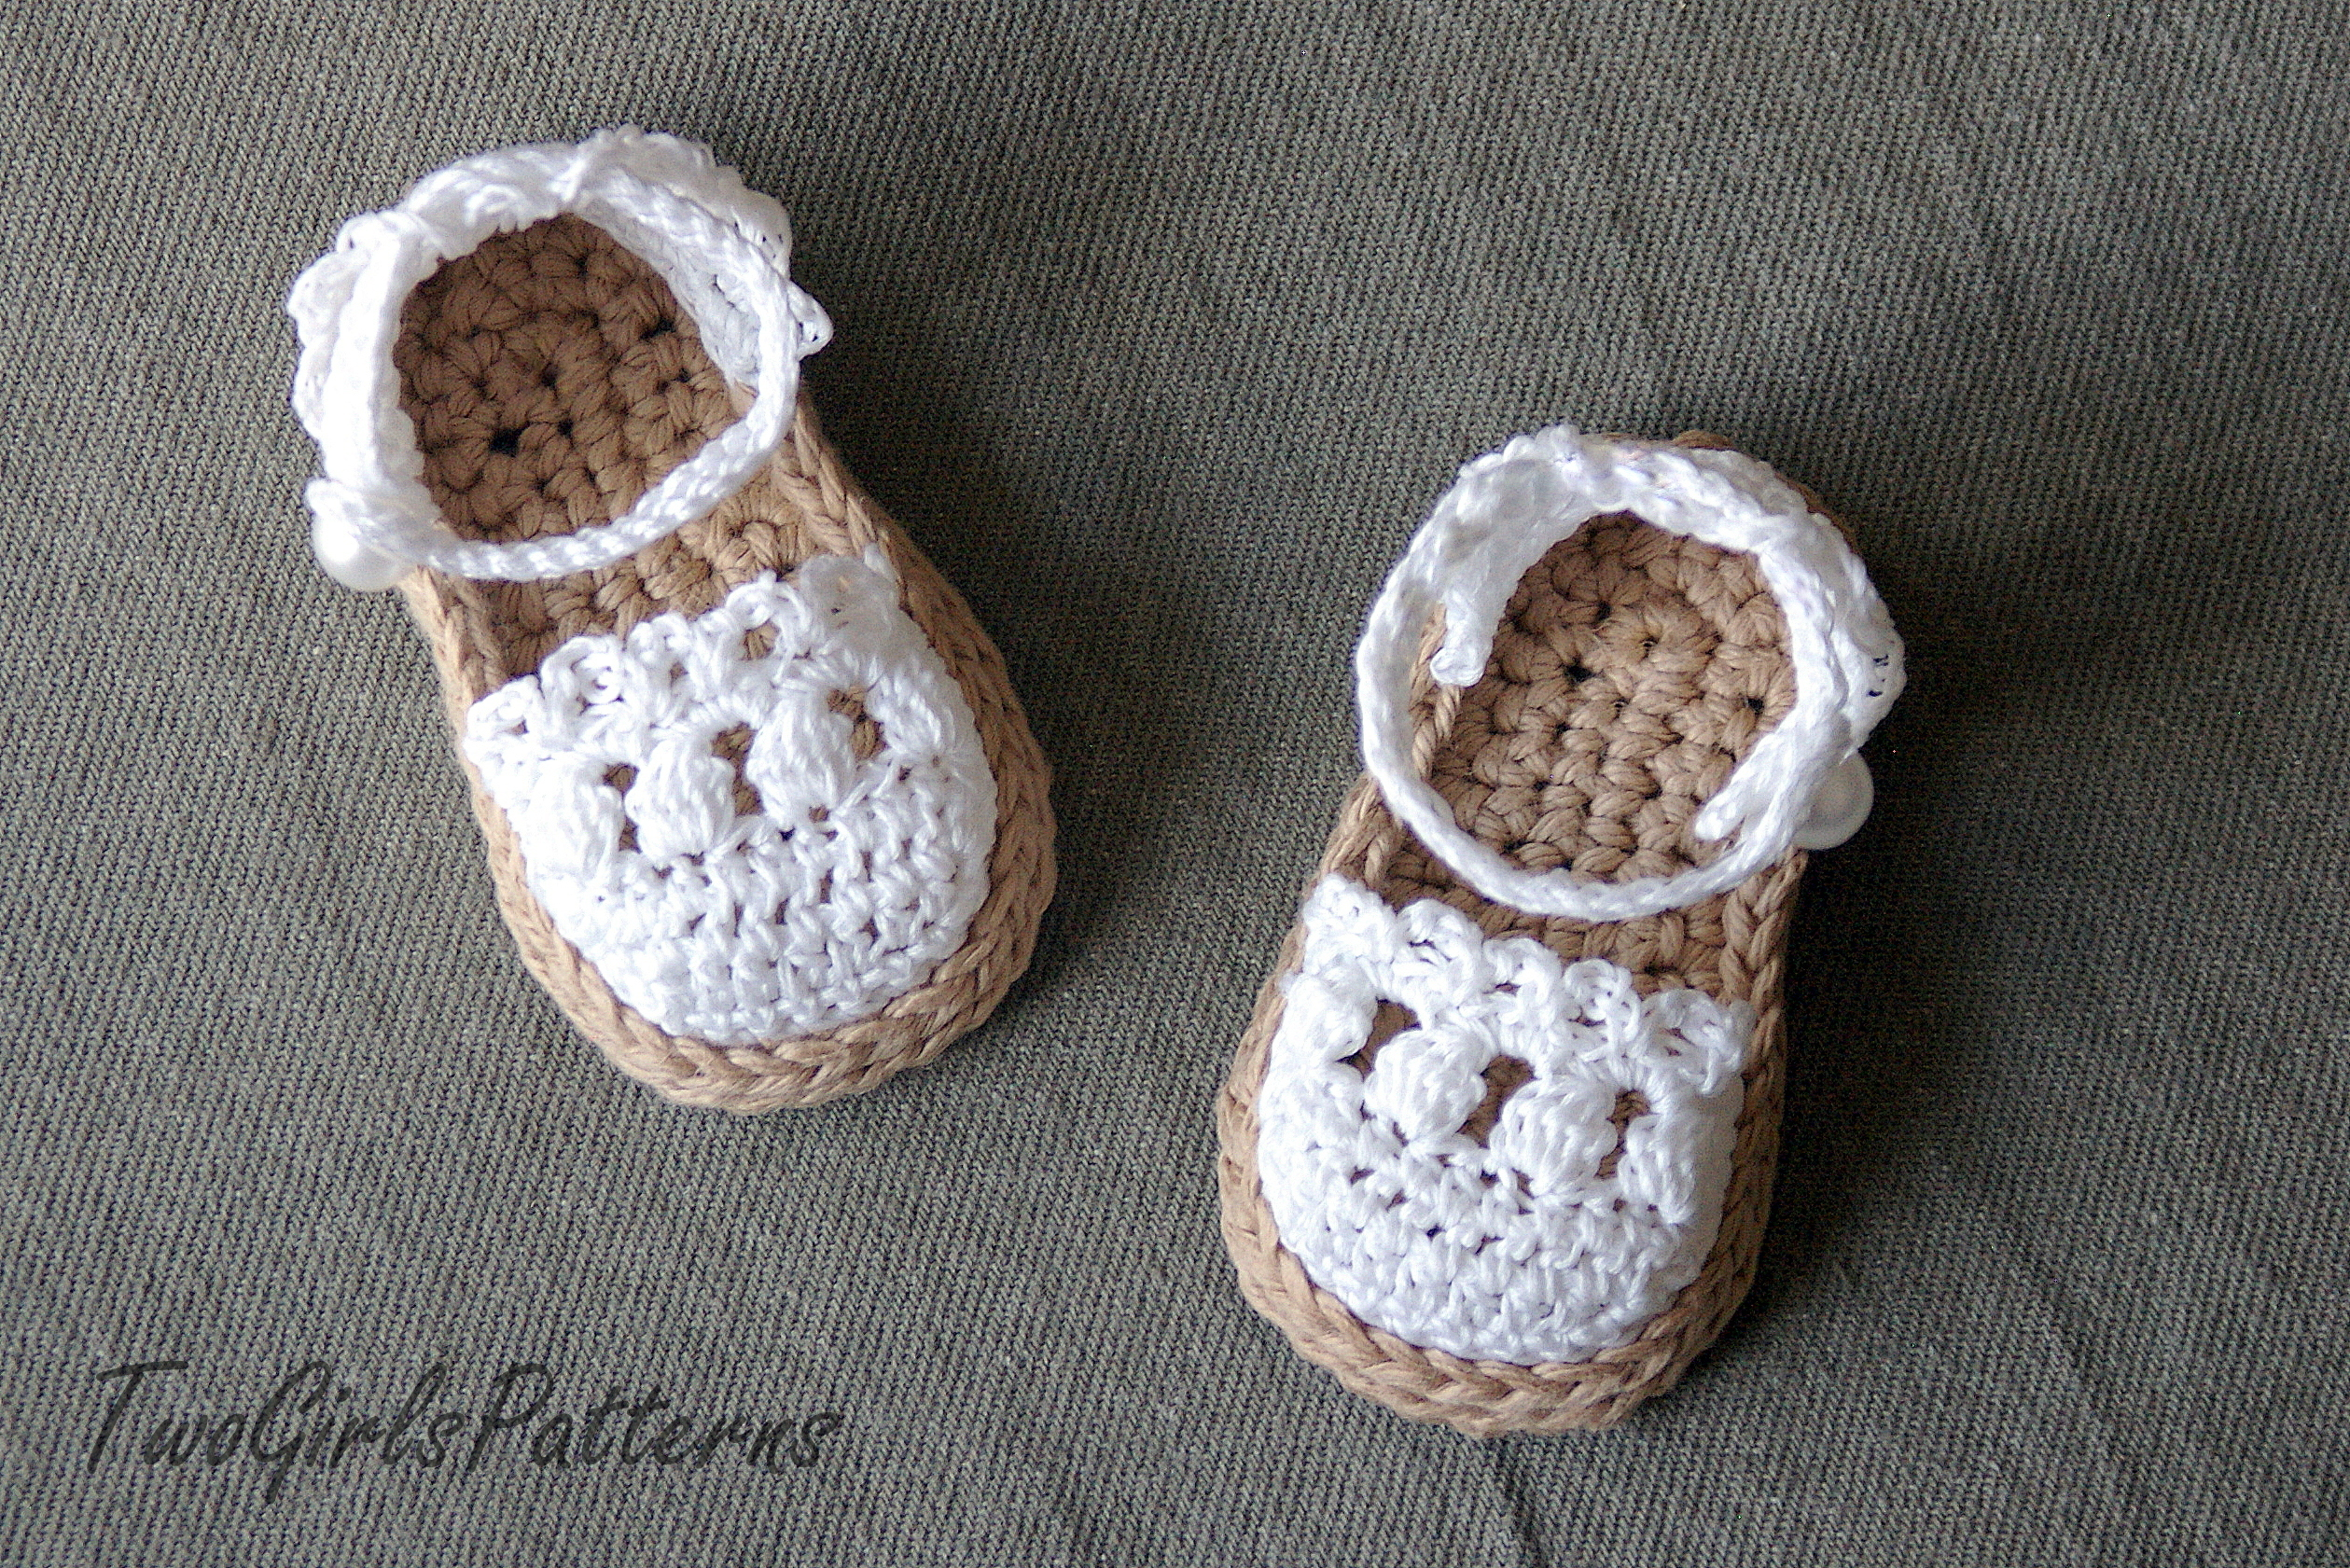 Crochet Patterns For Baby Shoes And Sandals : Crochet Pattern For Baby Espadrille Sandals - Crochet ...